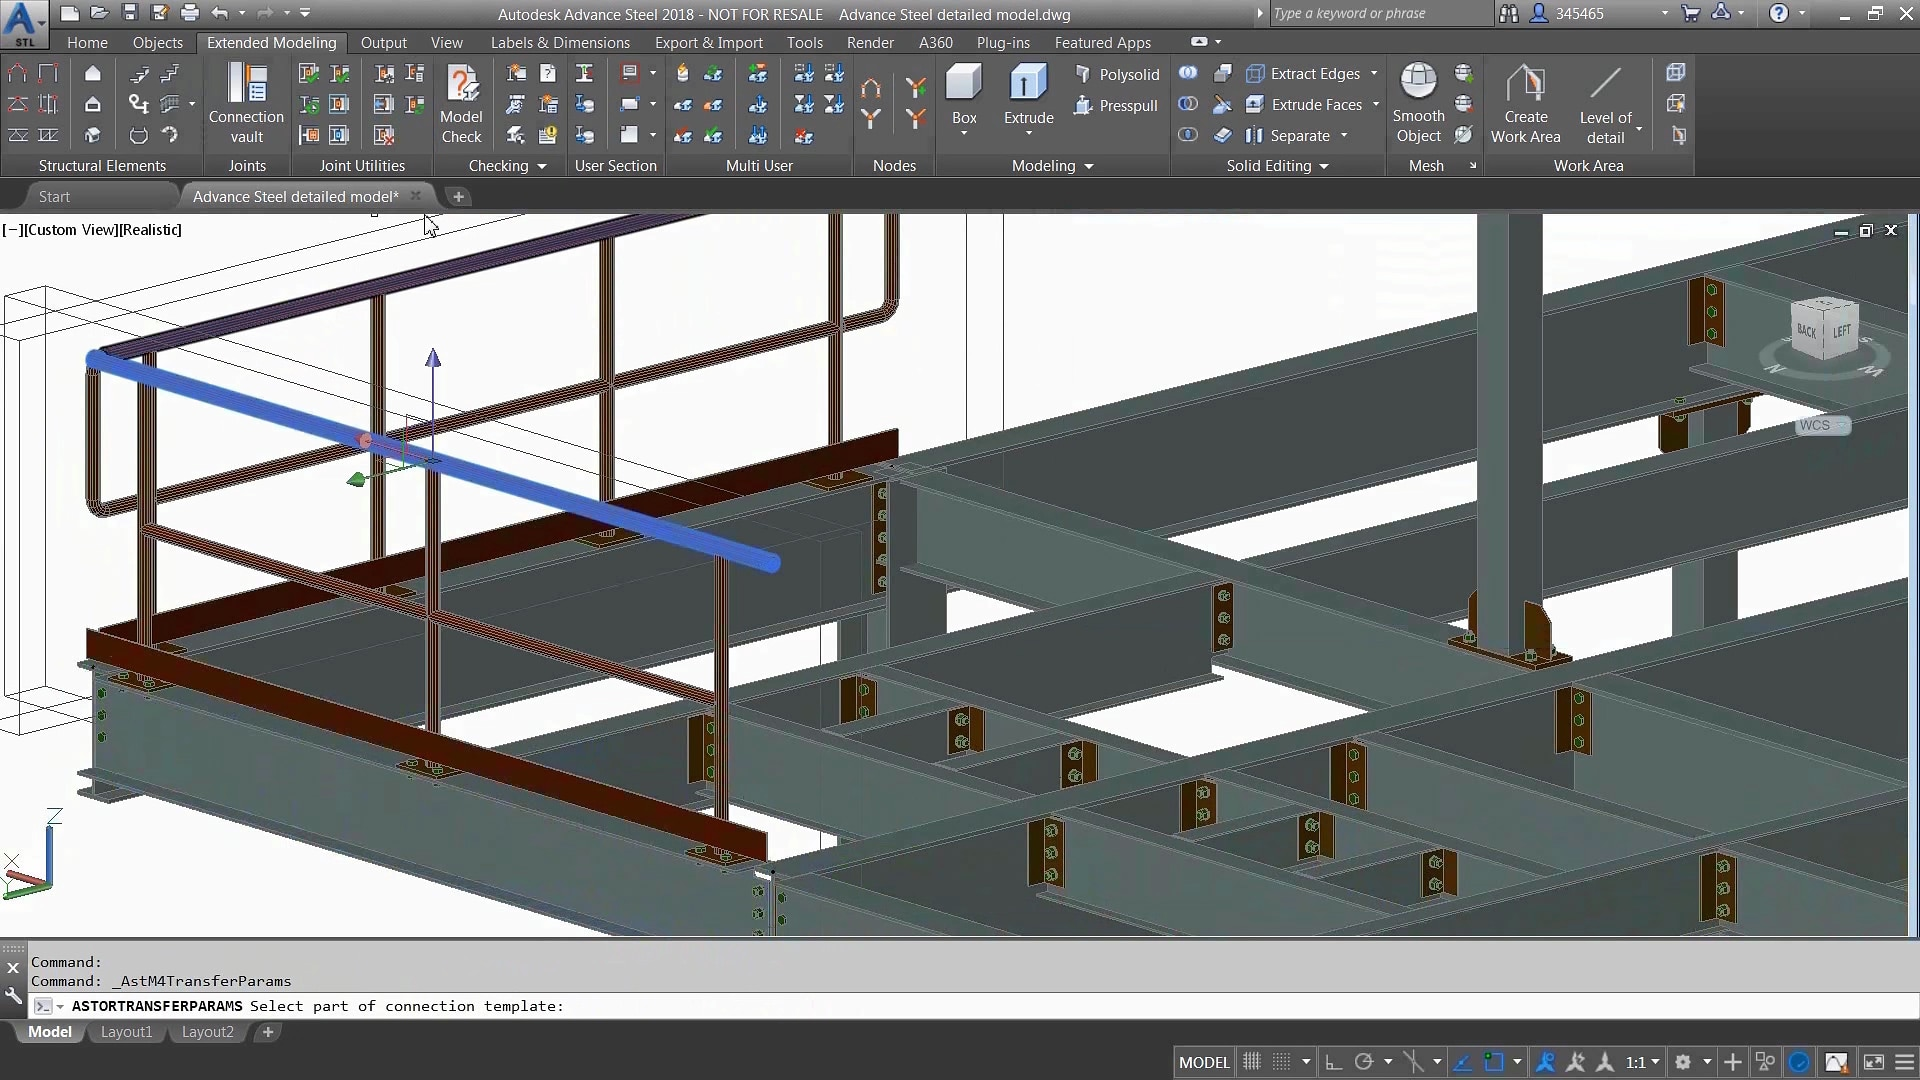 Desain Glass Block Revit Bim Software Autodesk